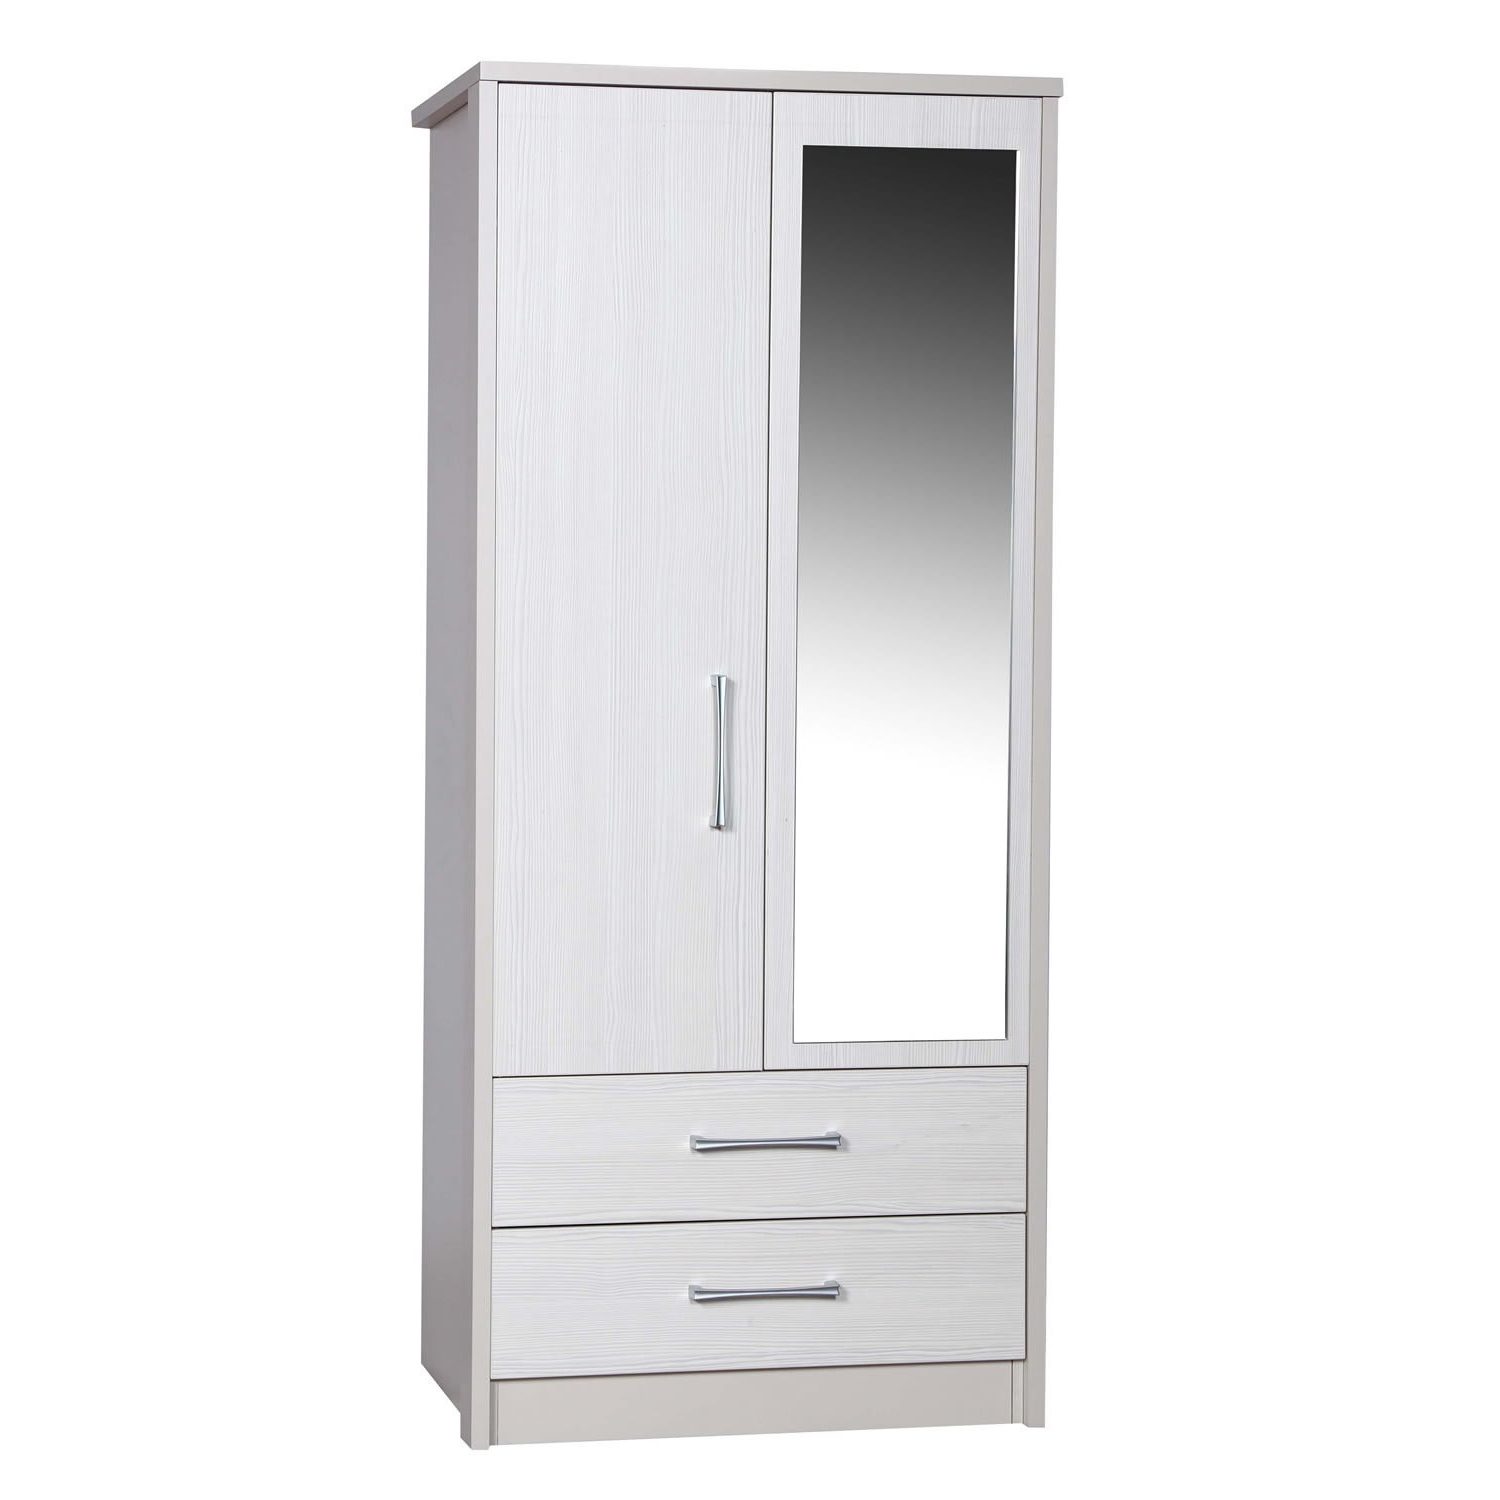 Most Popular Combi Wardrobes Pertaining To Avola White 2 Door 2 Drawer Combi Wardrobe With Mirror – Next Day (View 6 of 15)